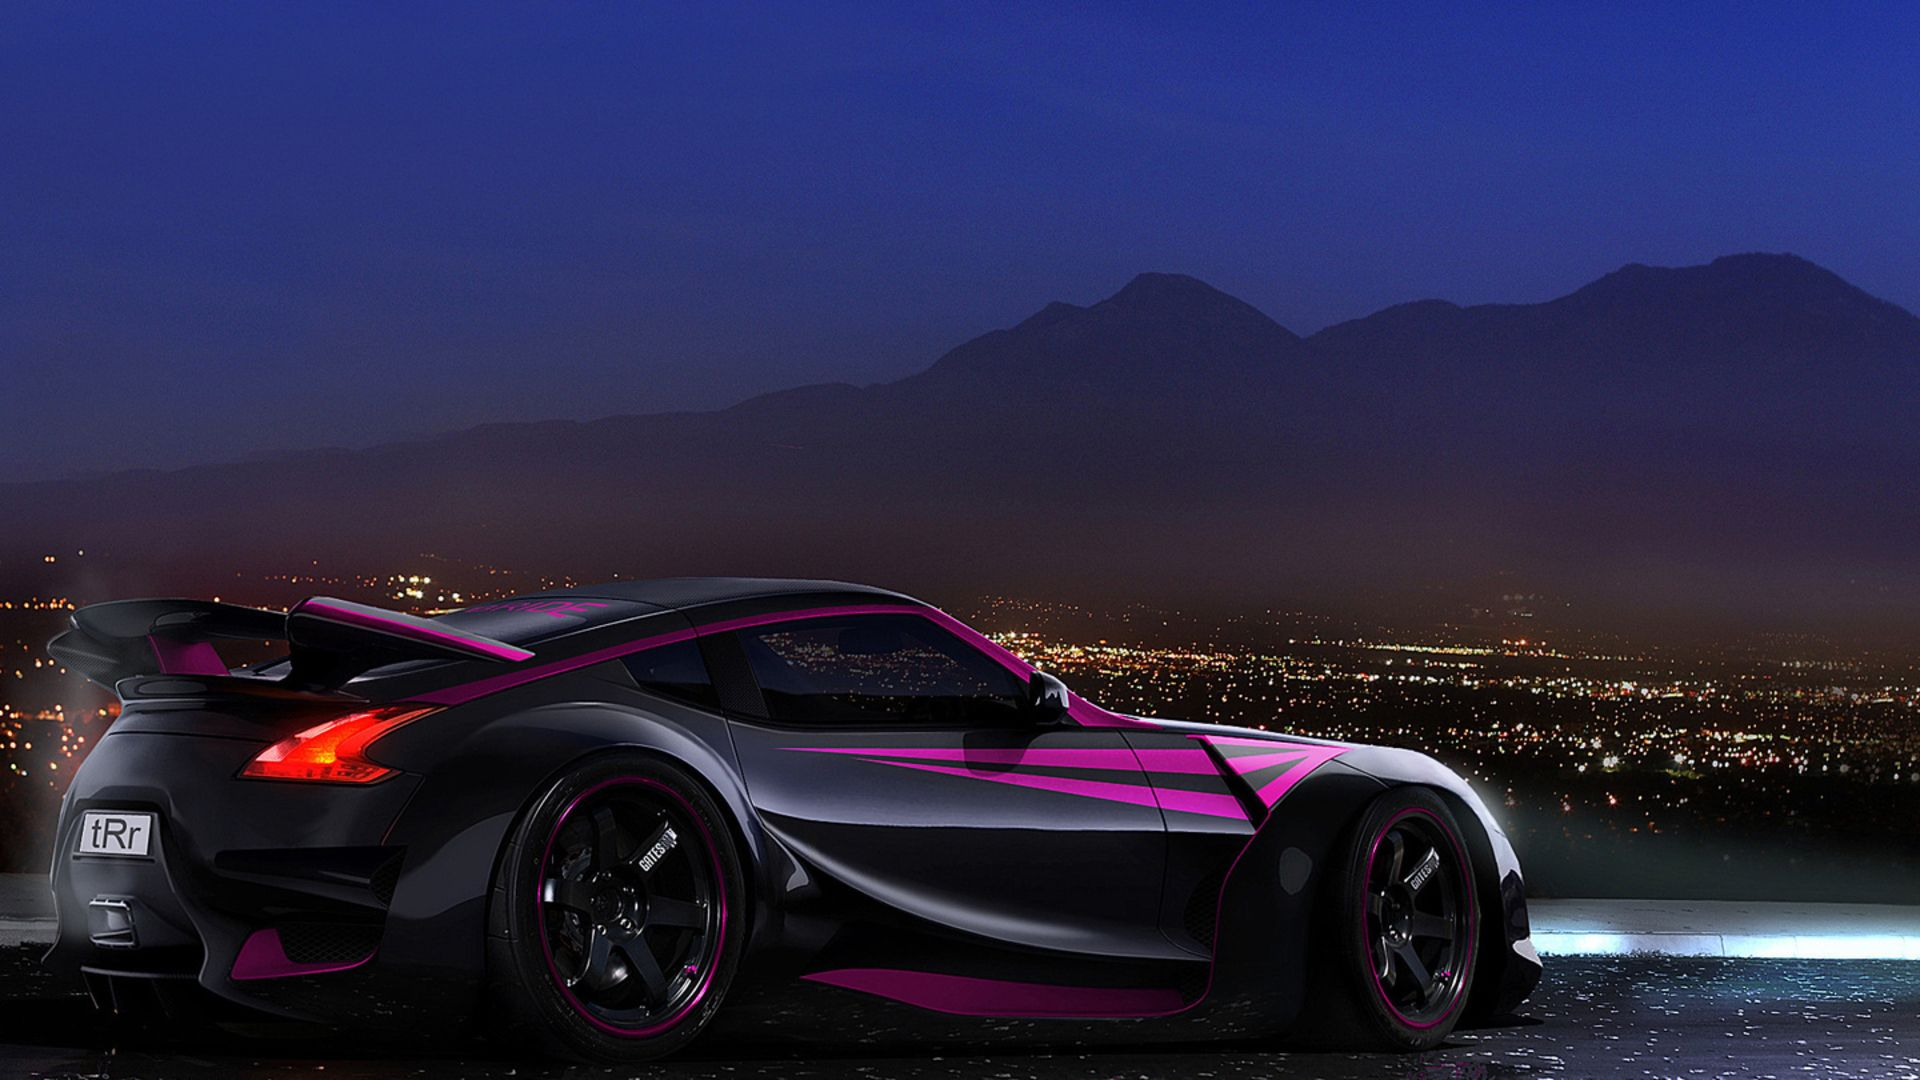 Hot Custom Car Nissan 370Z Sport Style Black And Purple Line Paint